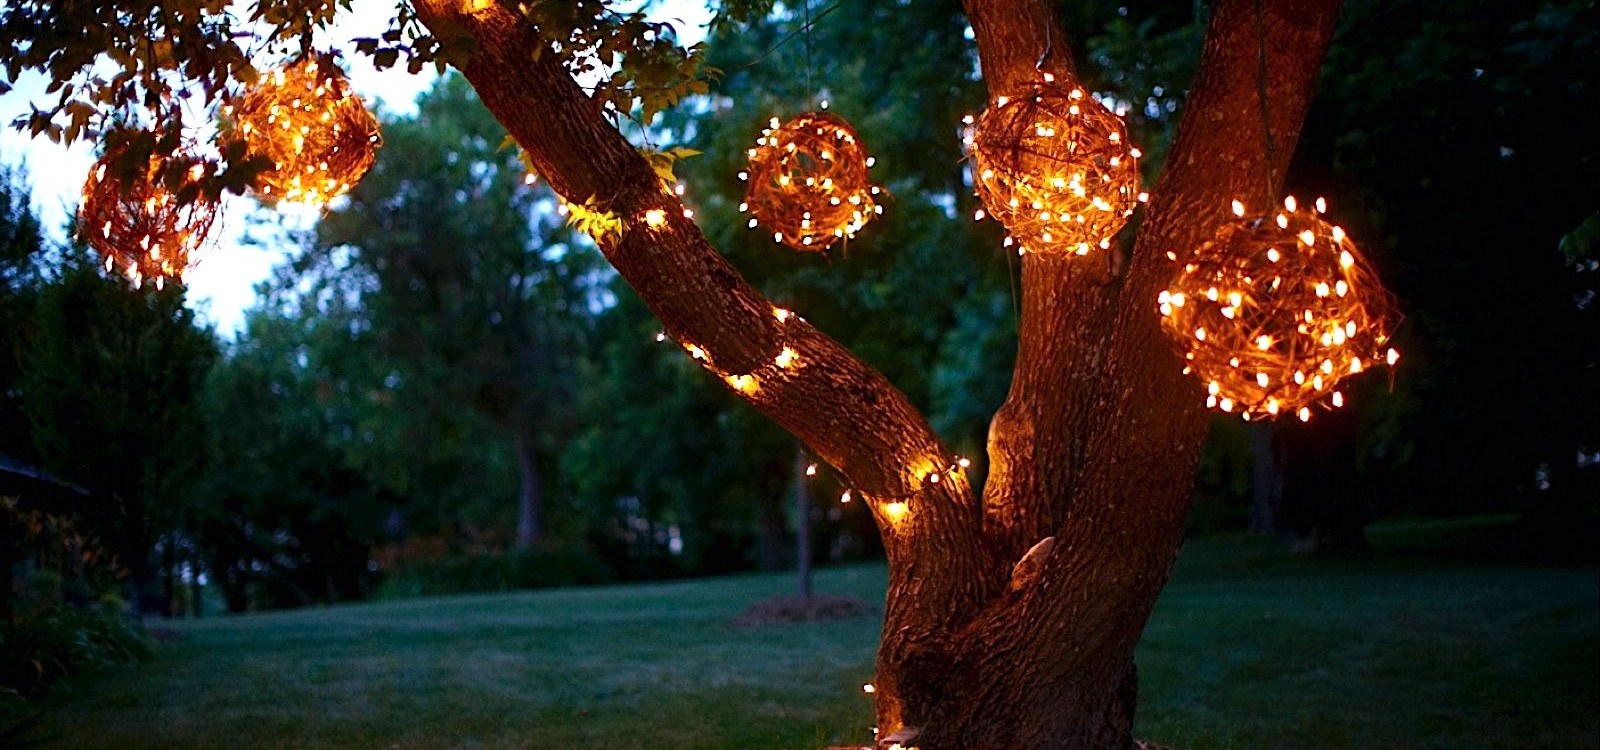 Grapevine Lighting Balls for Your Backyard